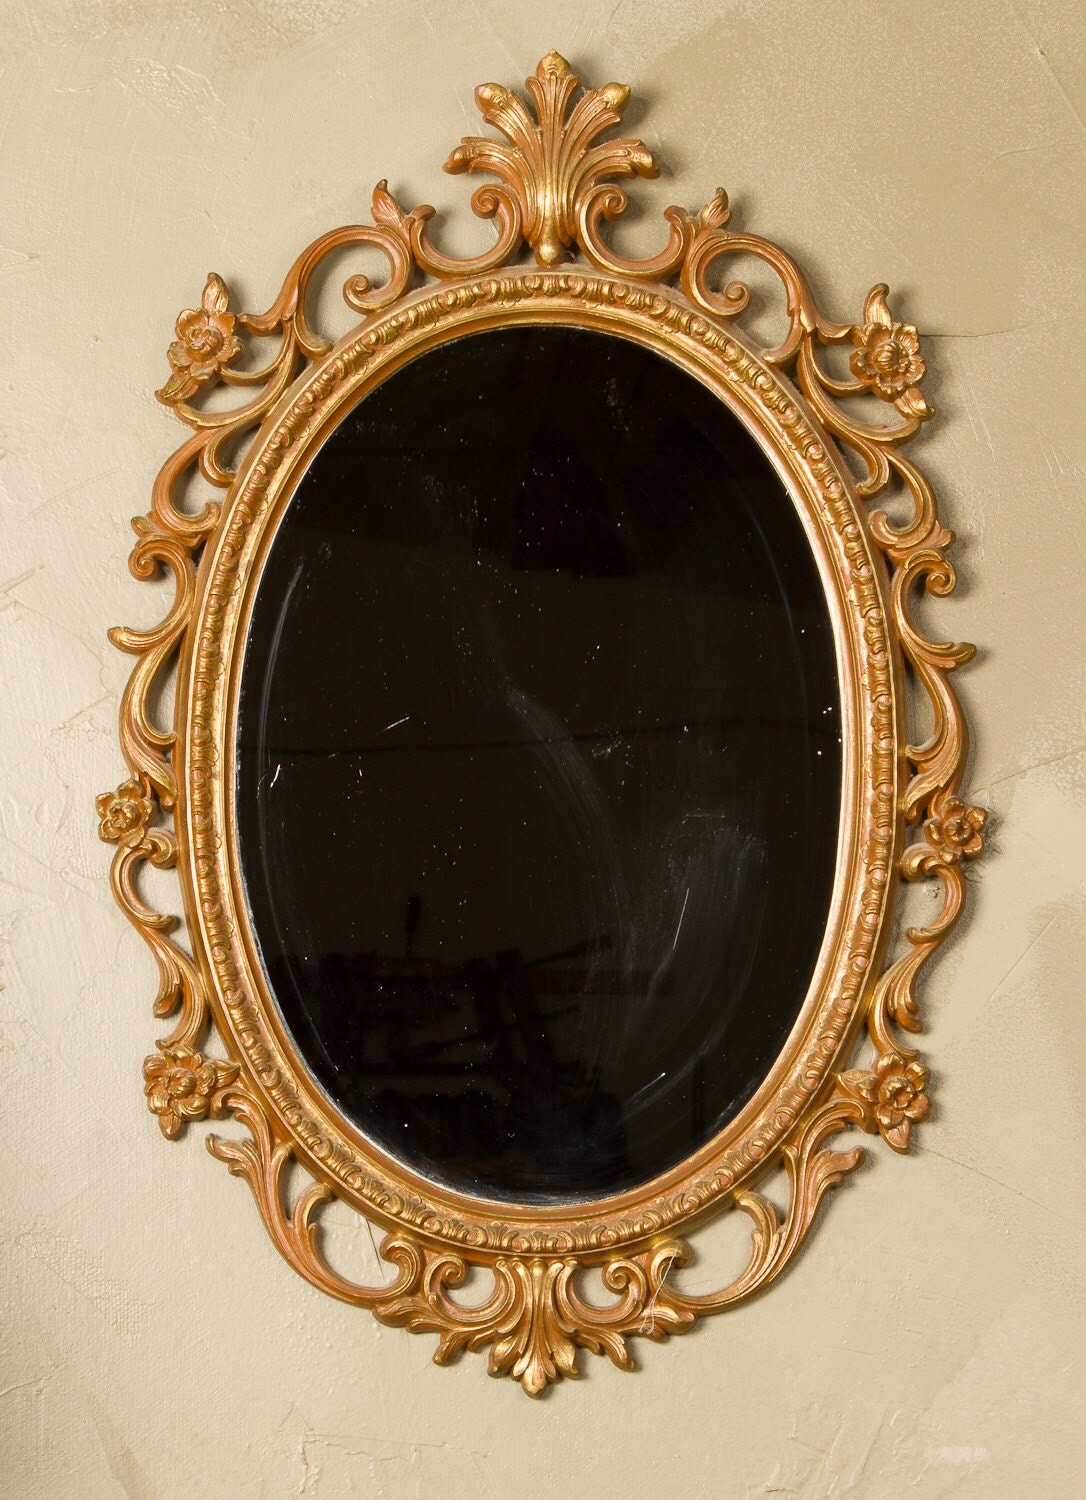 Details about brass photo frame vintage ornate oval frame victorian - Syroco Mirror Frame